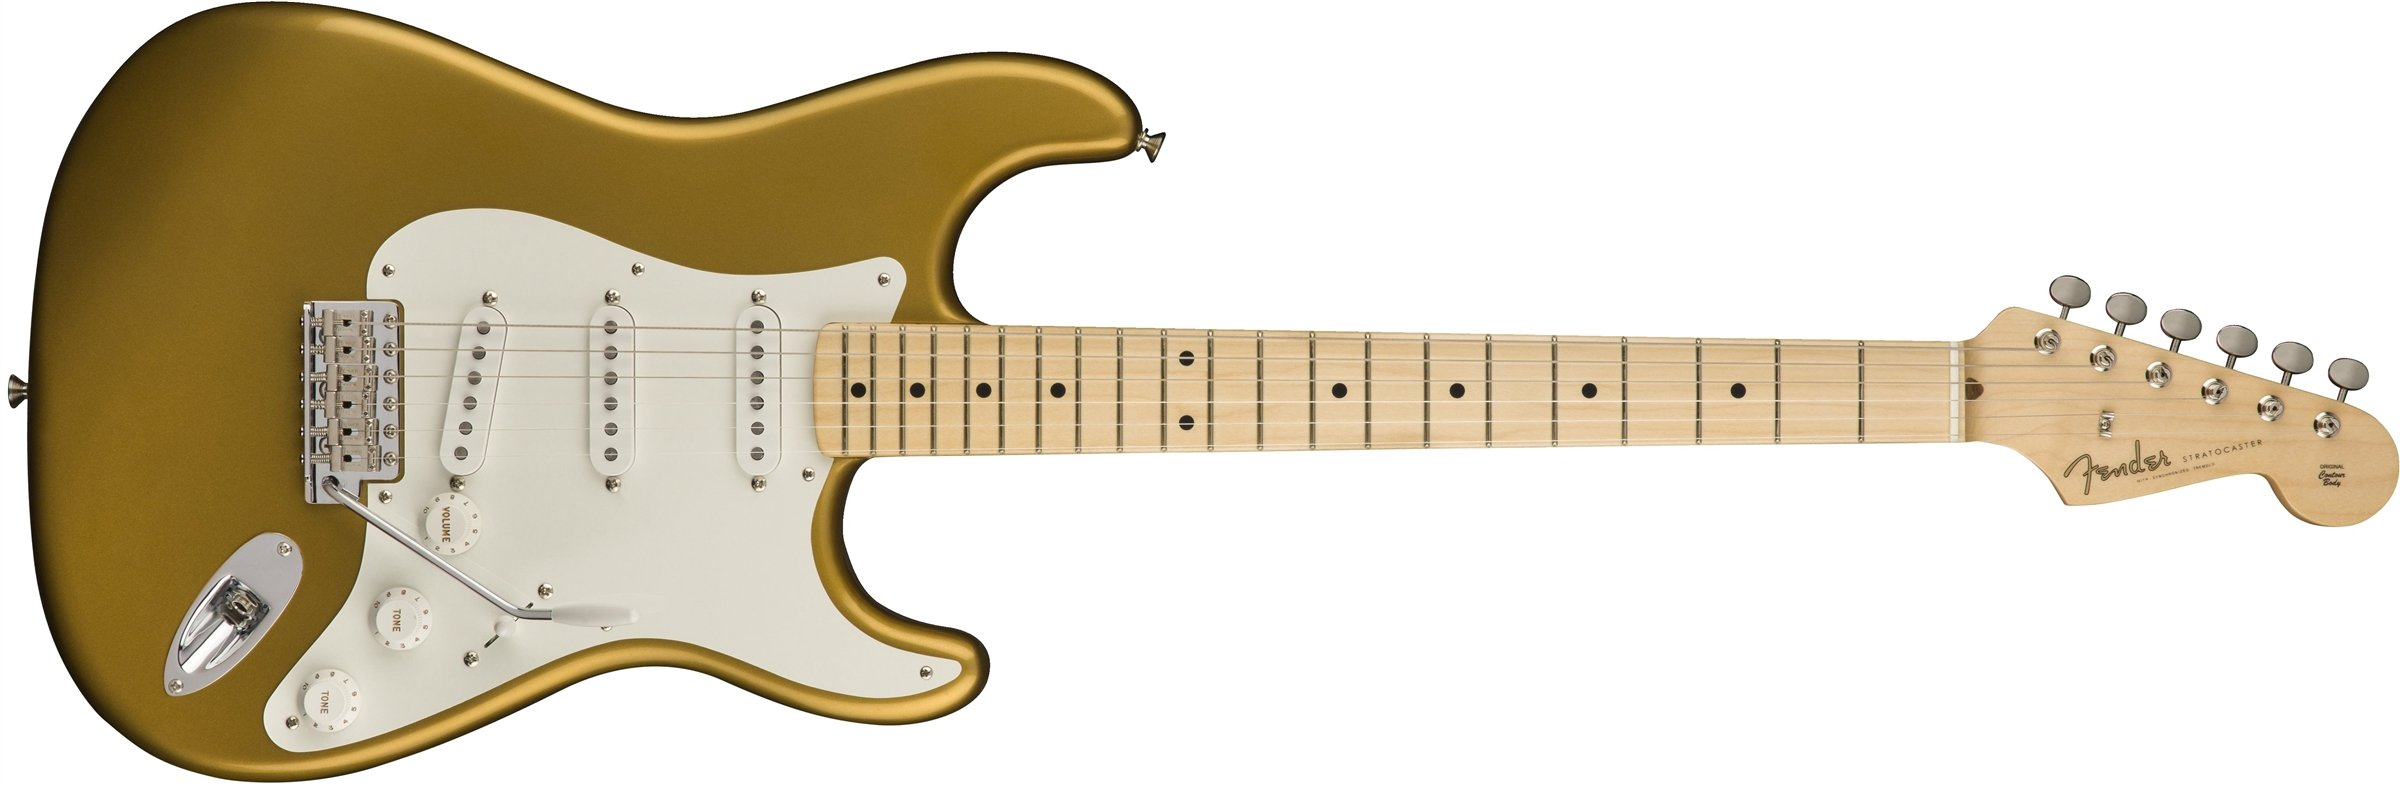 Fender American Original '50s Stratocaster Electric Guitar with Maple Fingerboard STRAT-AMORG-50-MN